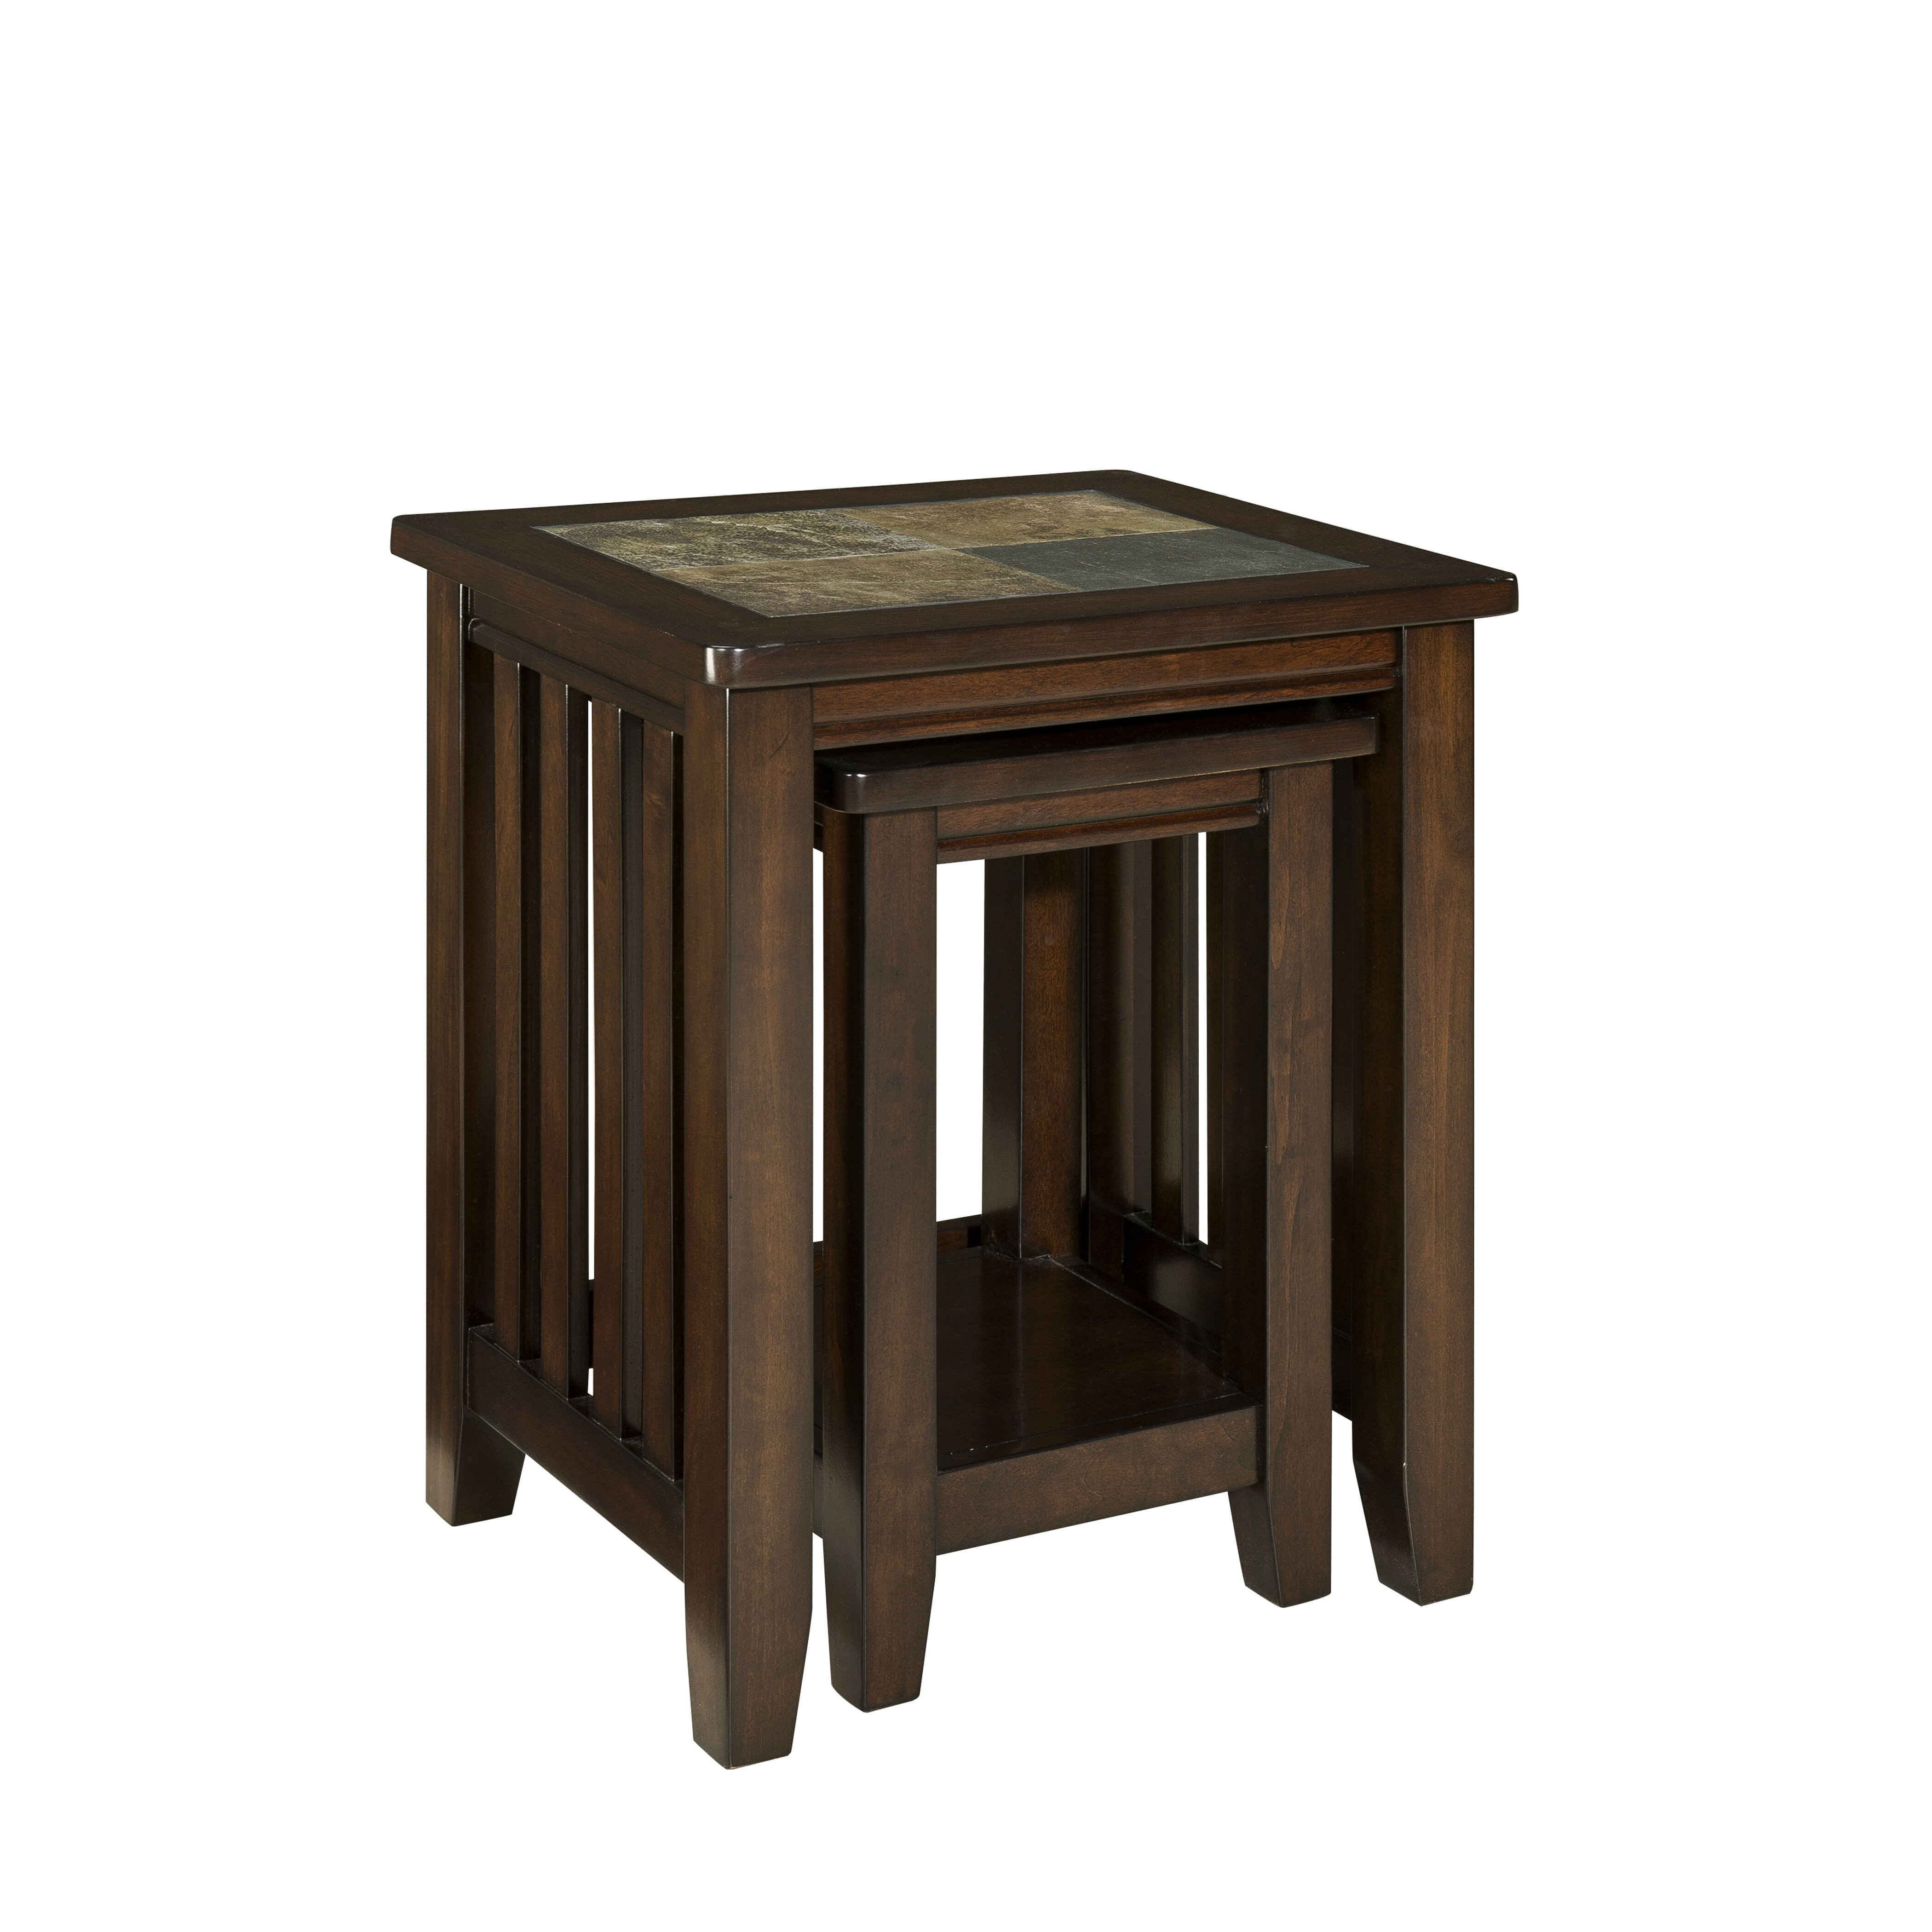 Standard furniture napa valley 2 piece nesting tables for Wayfair shop furniture